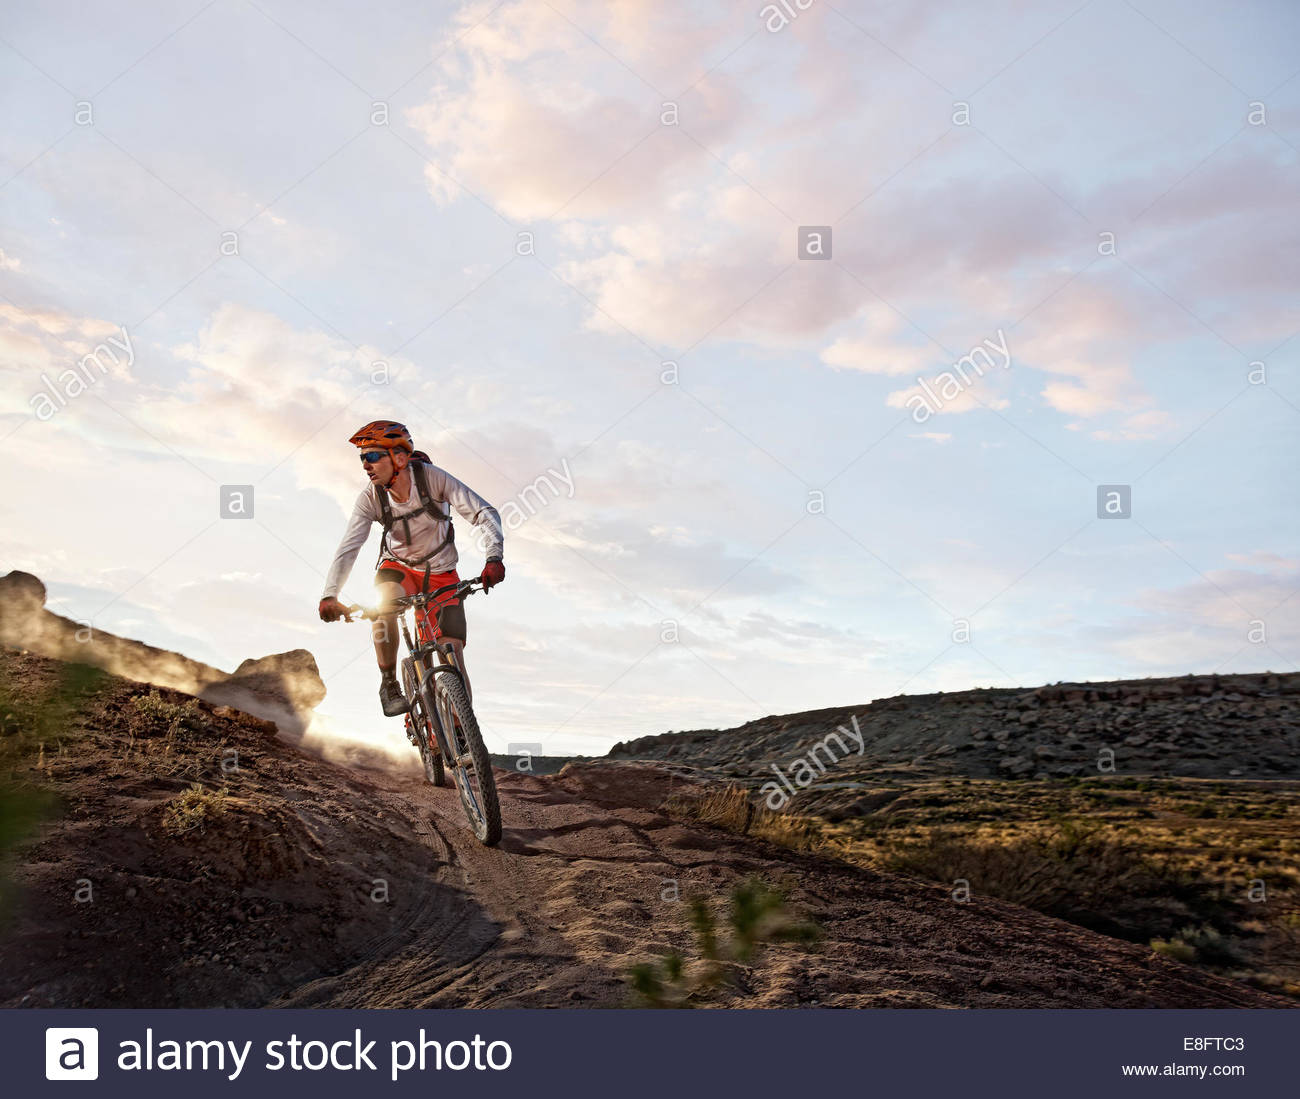 USA, Colorado, Mesa County, Grand Junction, Mountain-Biker unterwegs Stockbild